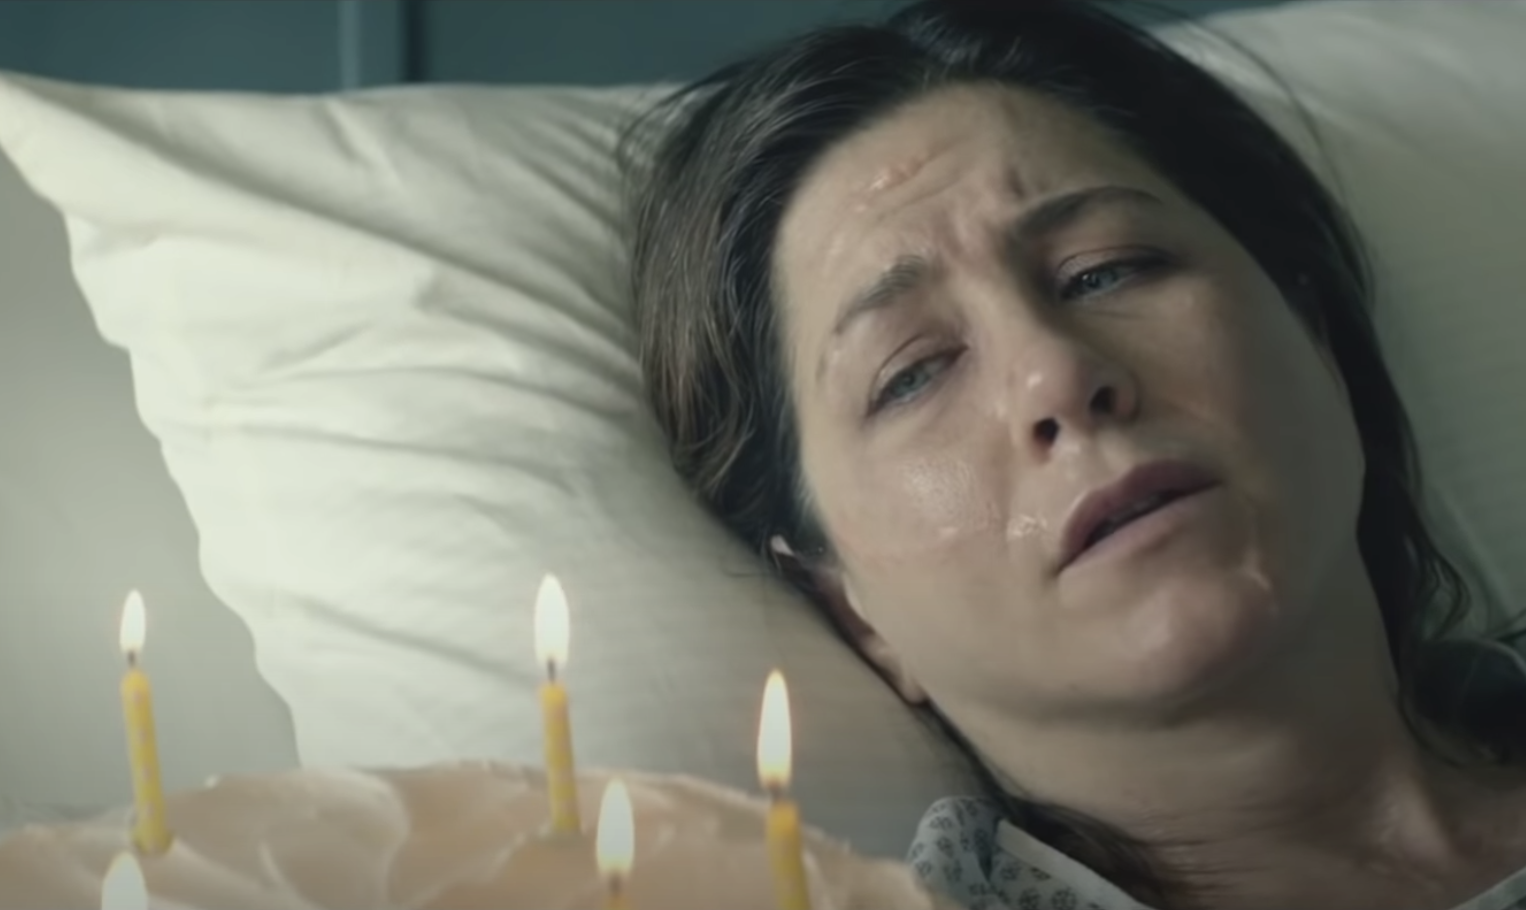 Jennifer aniston sweating miserably in a hospital bed and looking at a birthday cake in cake